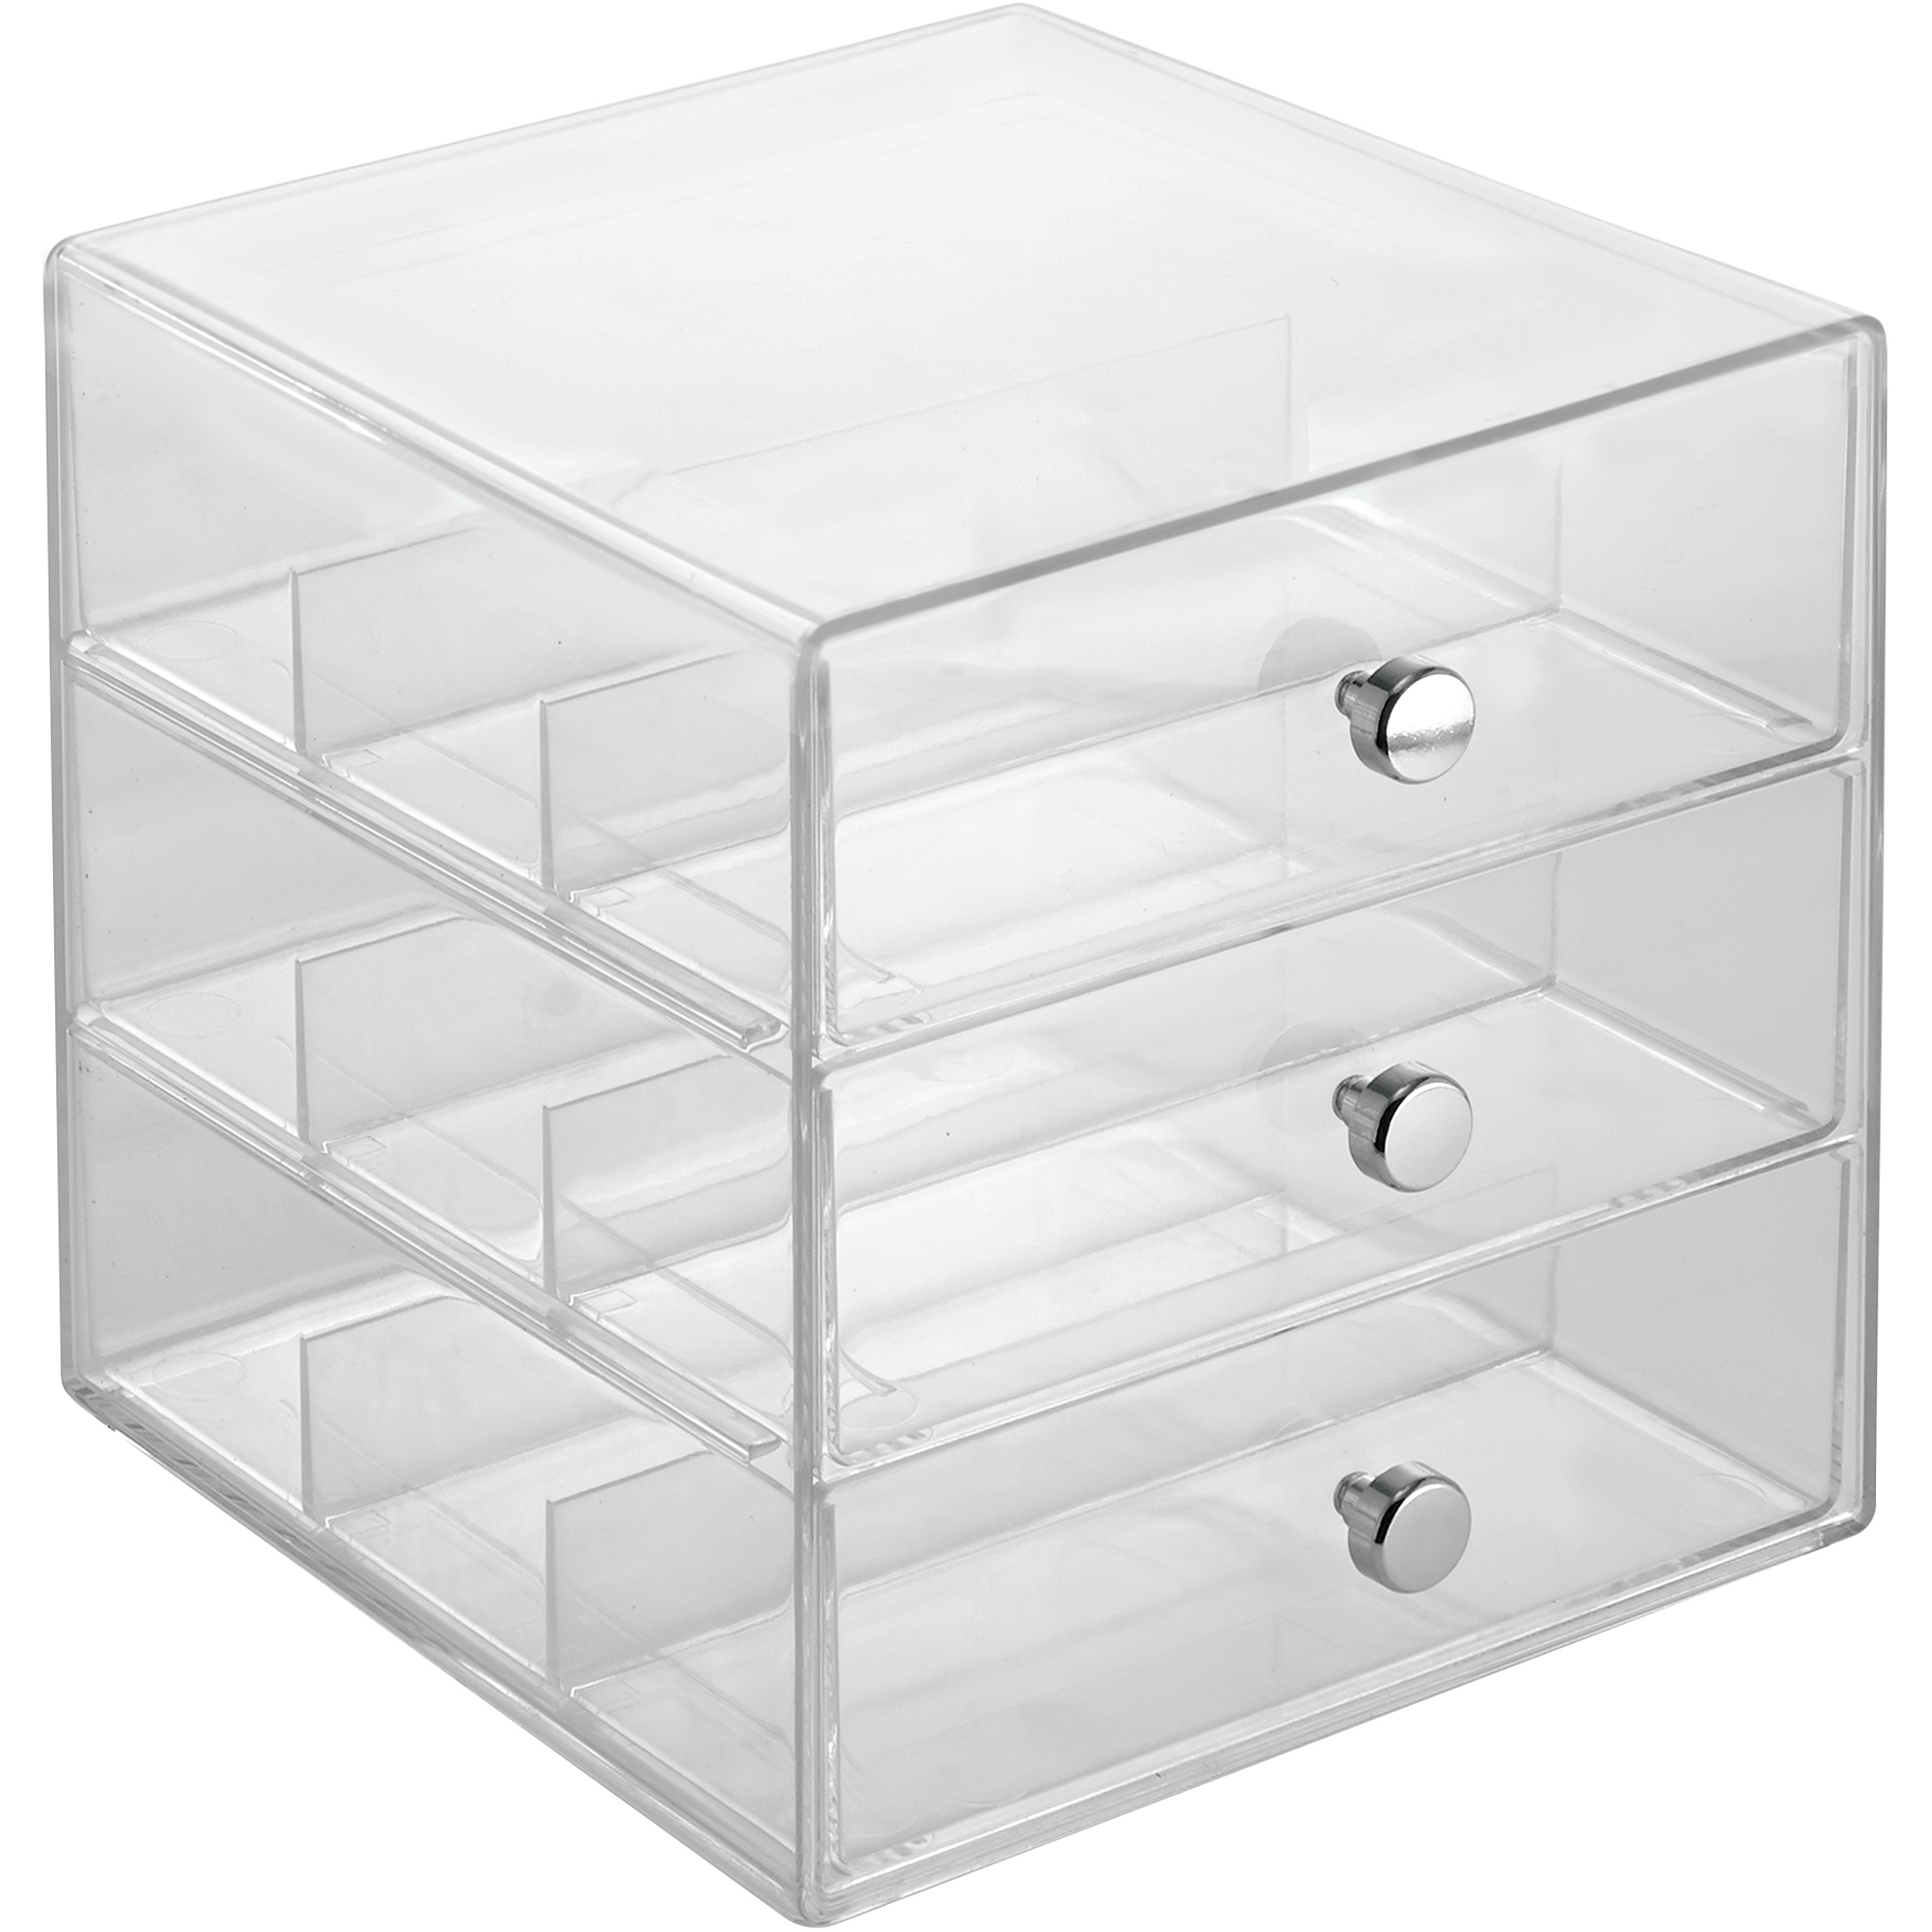 InterDesign Clarity 3 Drawer Eyeglass Case, Various Quantities   Walmart.com